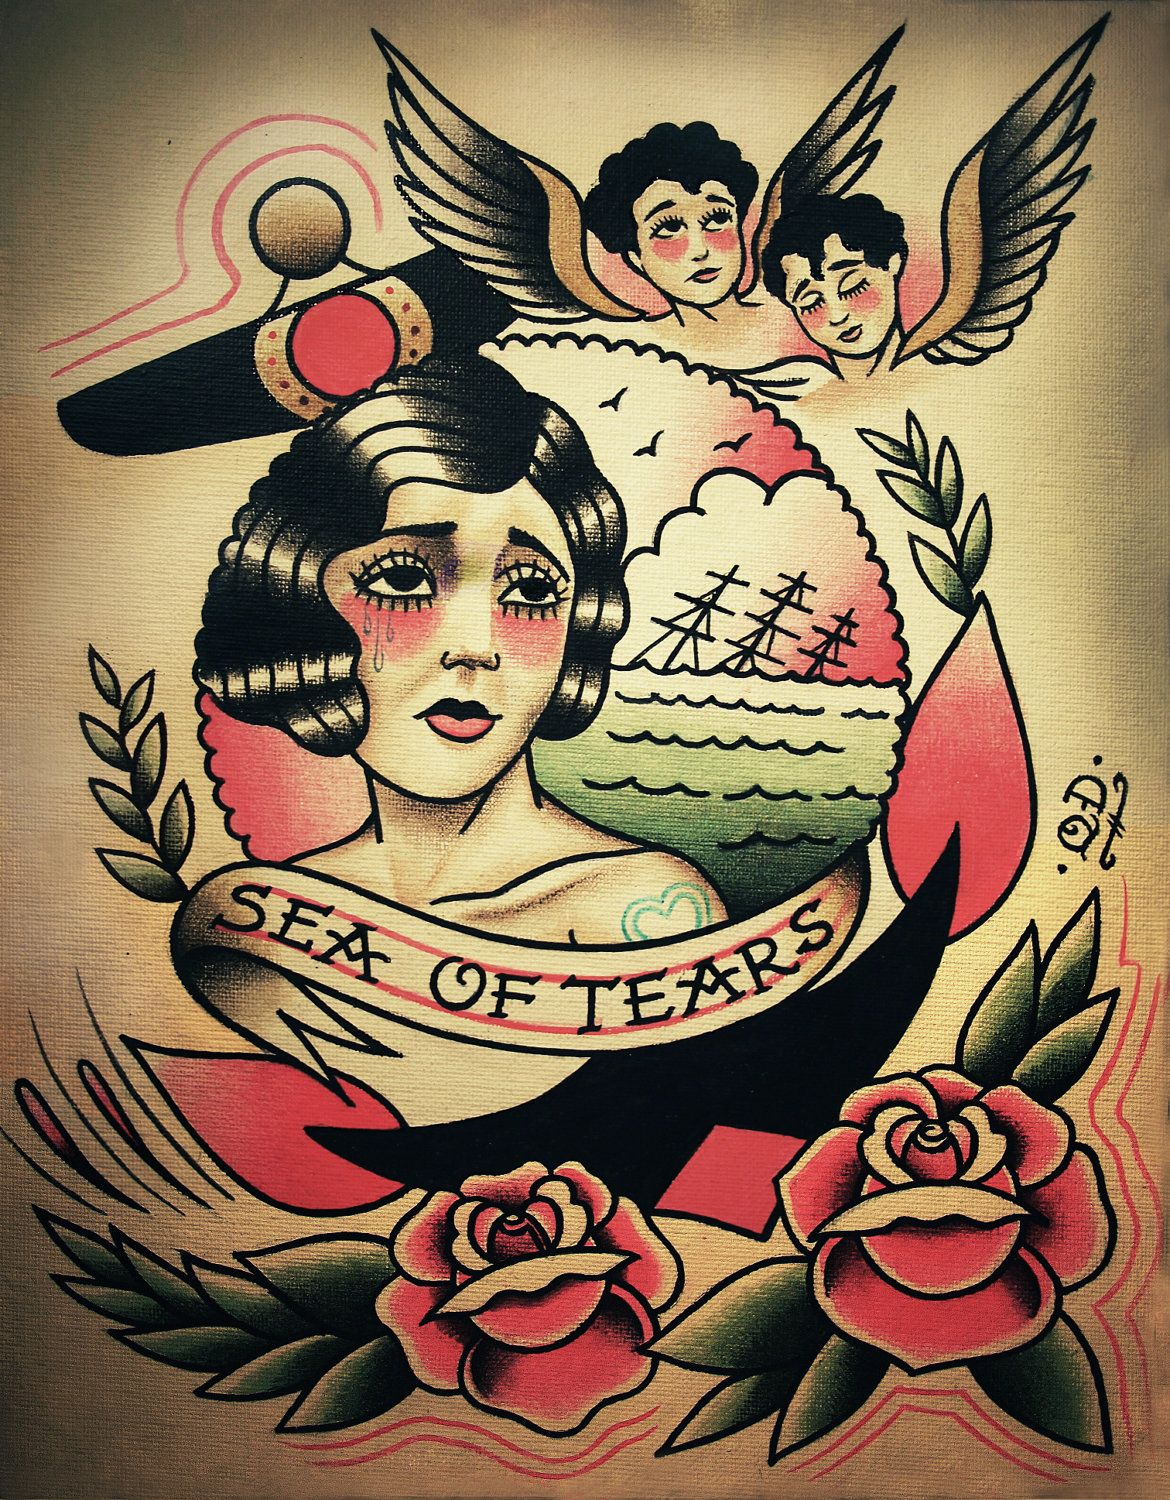 A sea of tears. Traditional and old school flash by Quyen